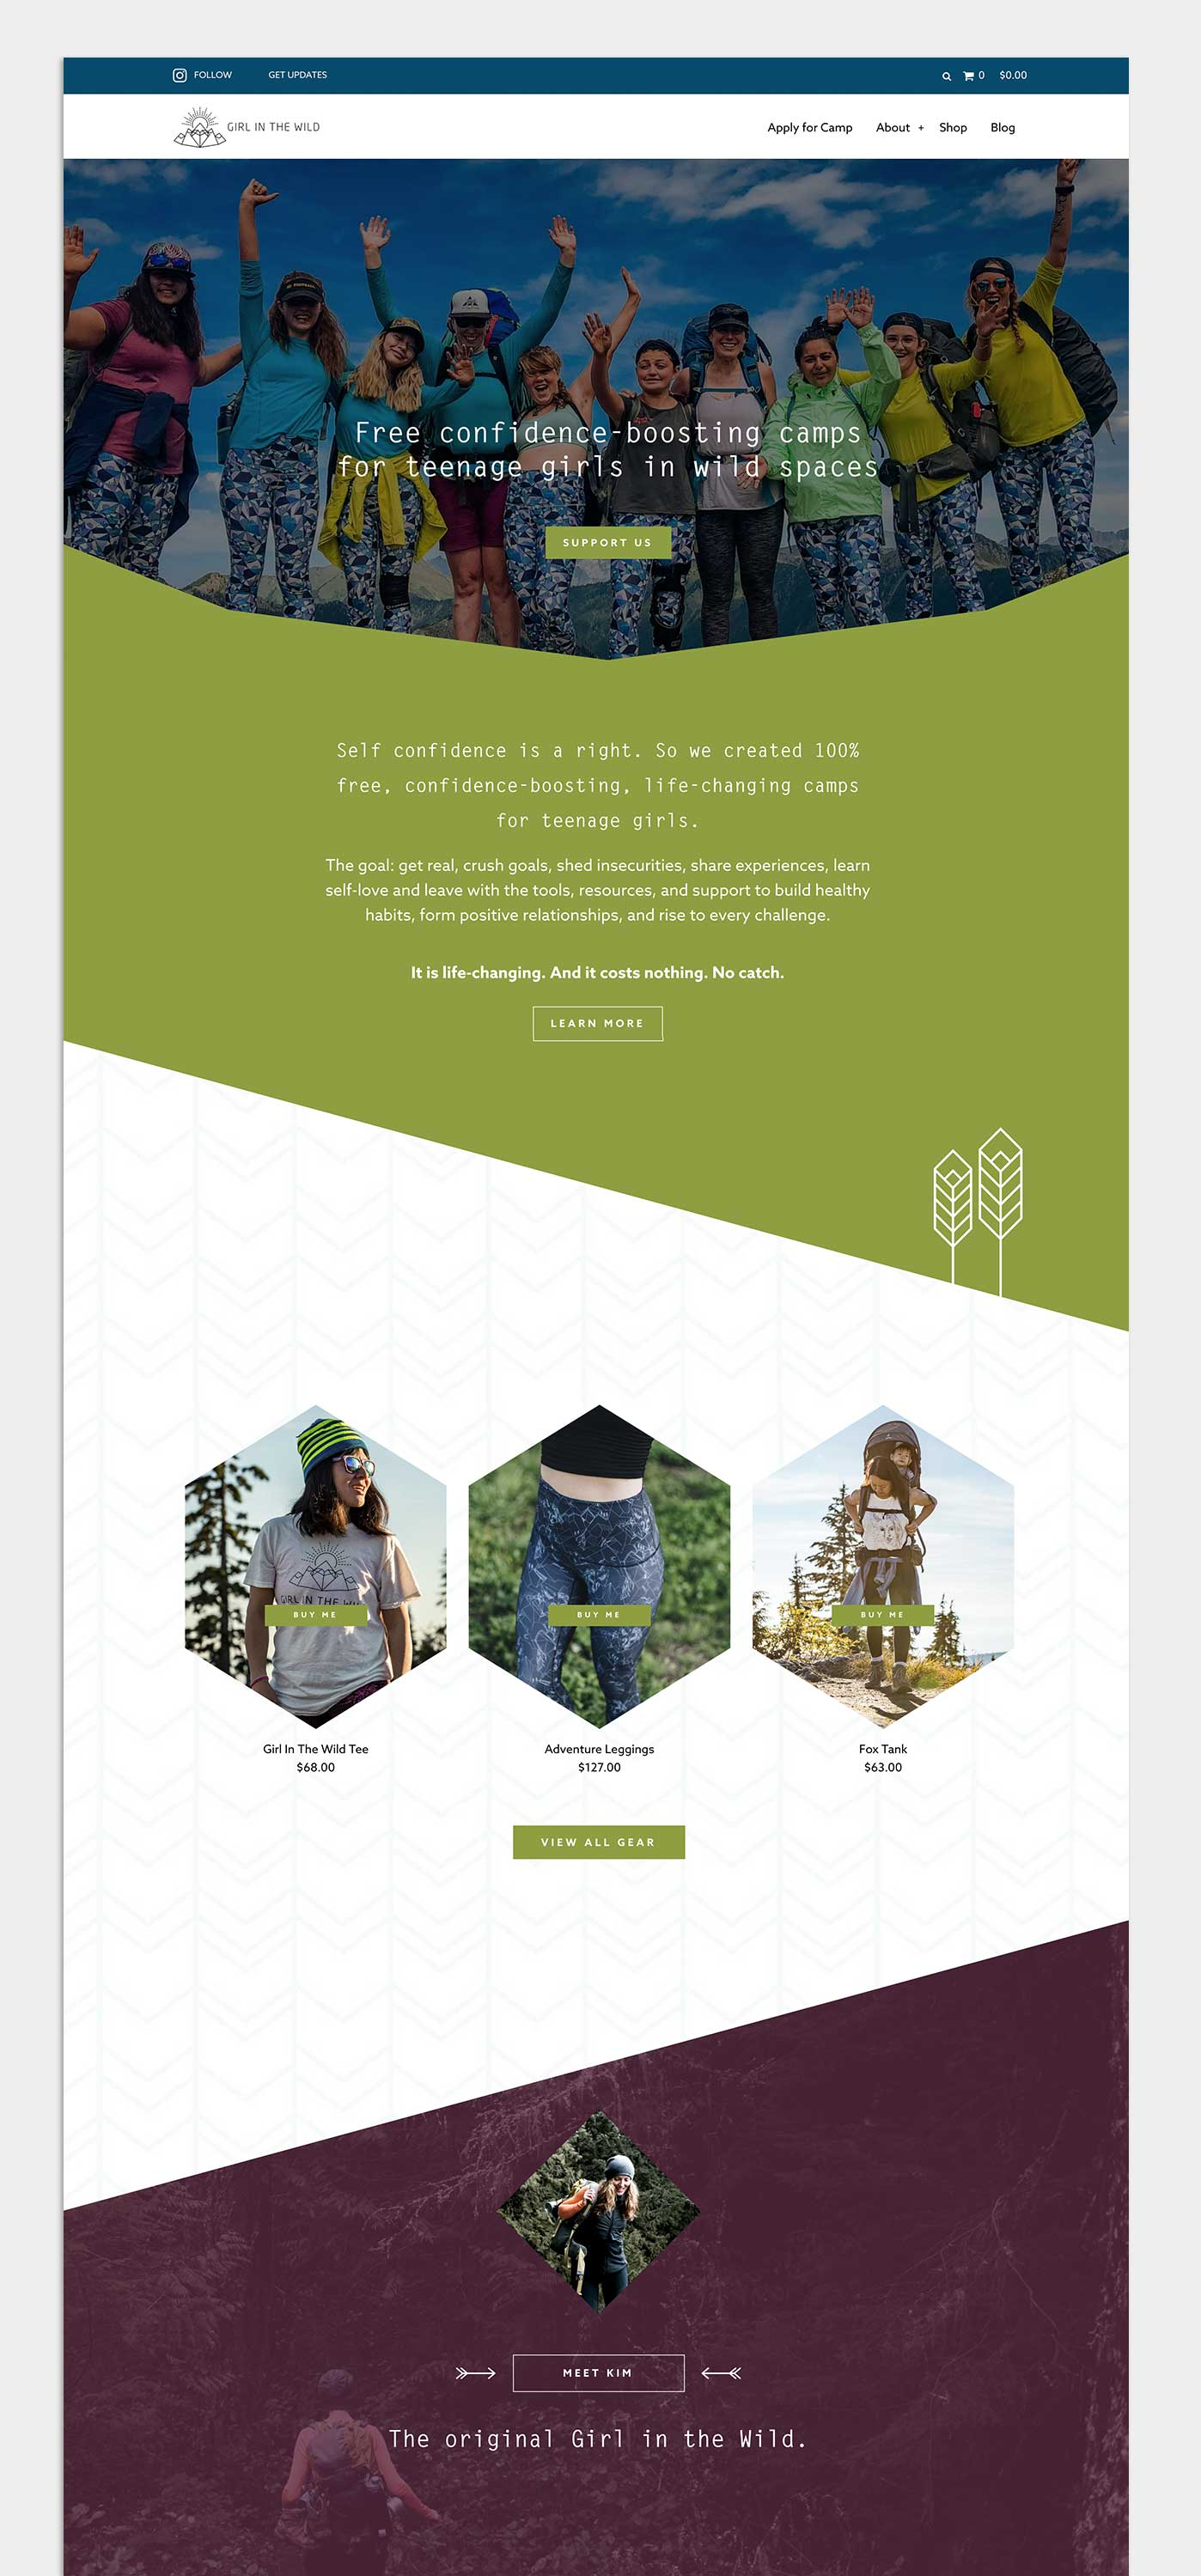 Brand design, web design and development, and printed marketing materials for Girl In The Wild, by Flipside Creative.